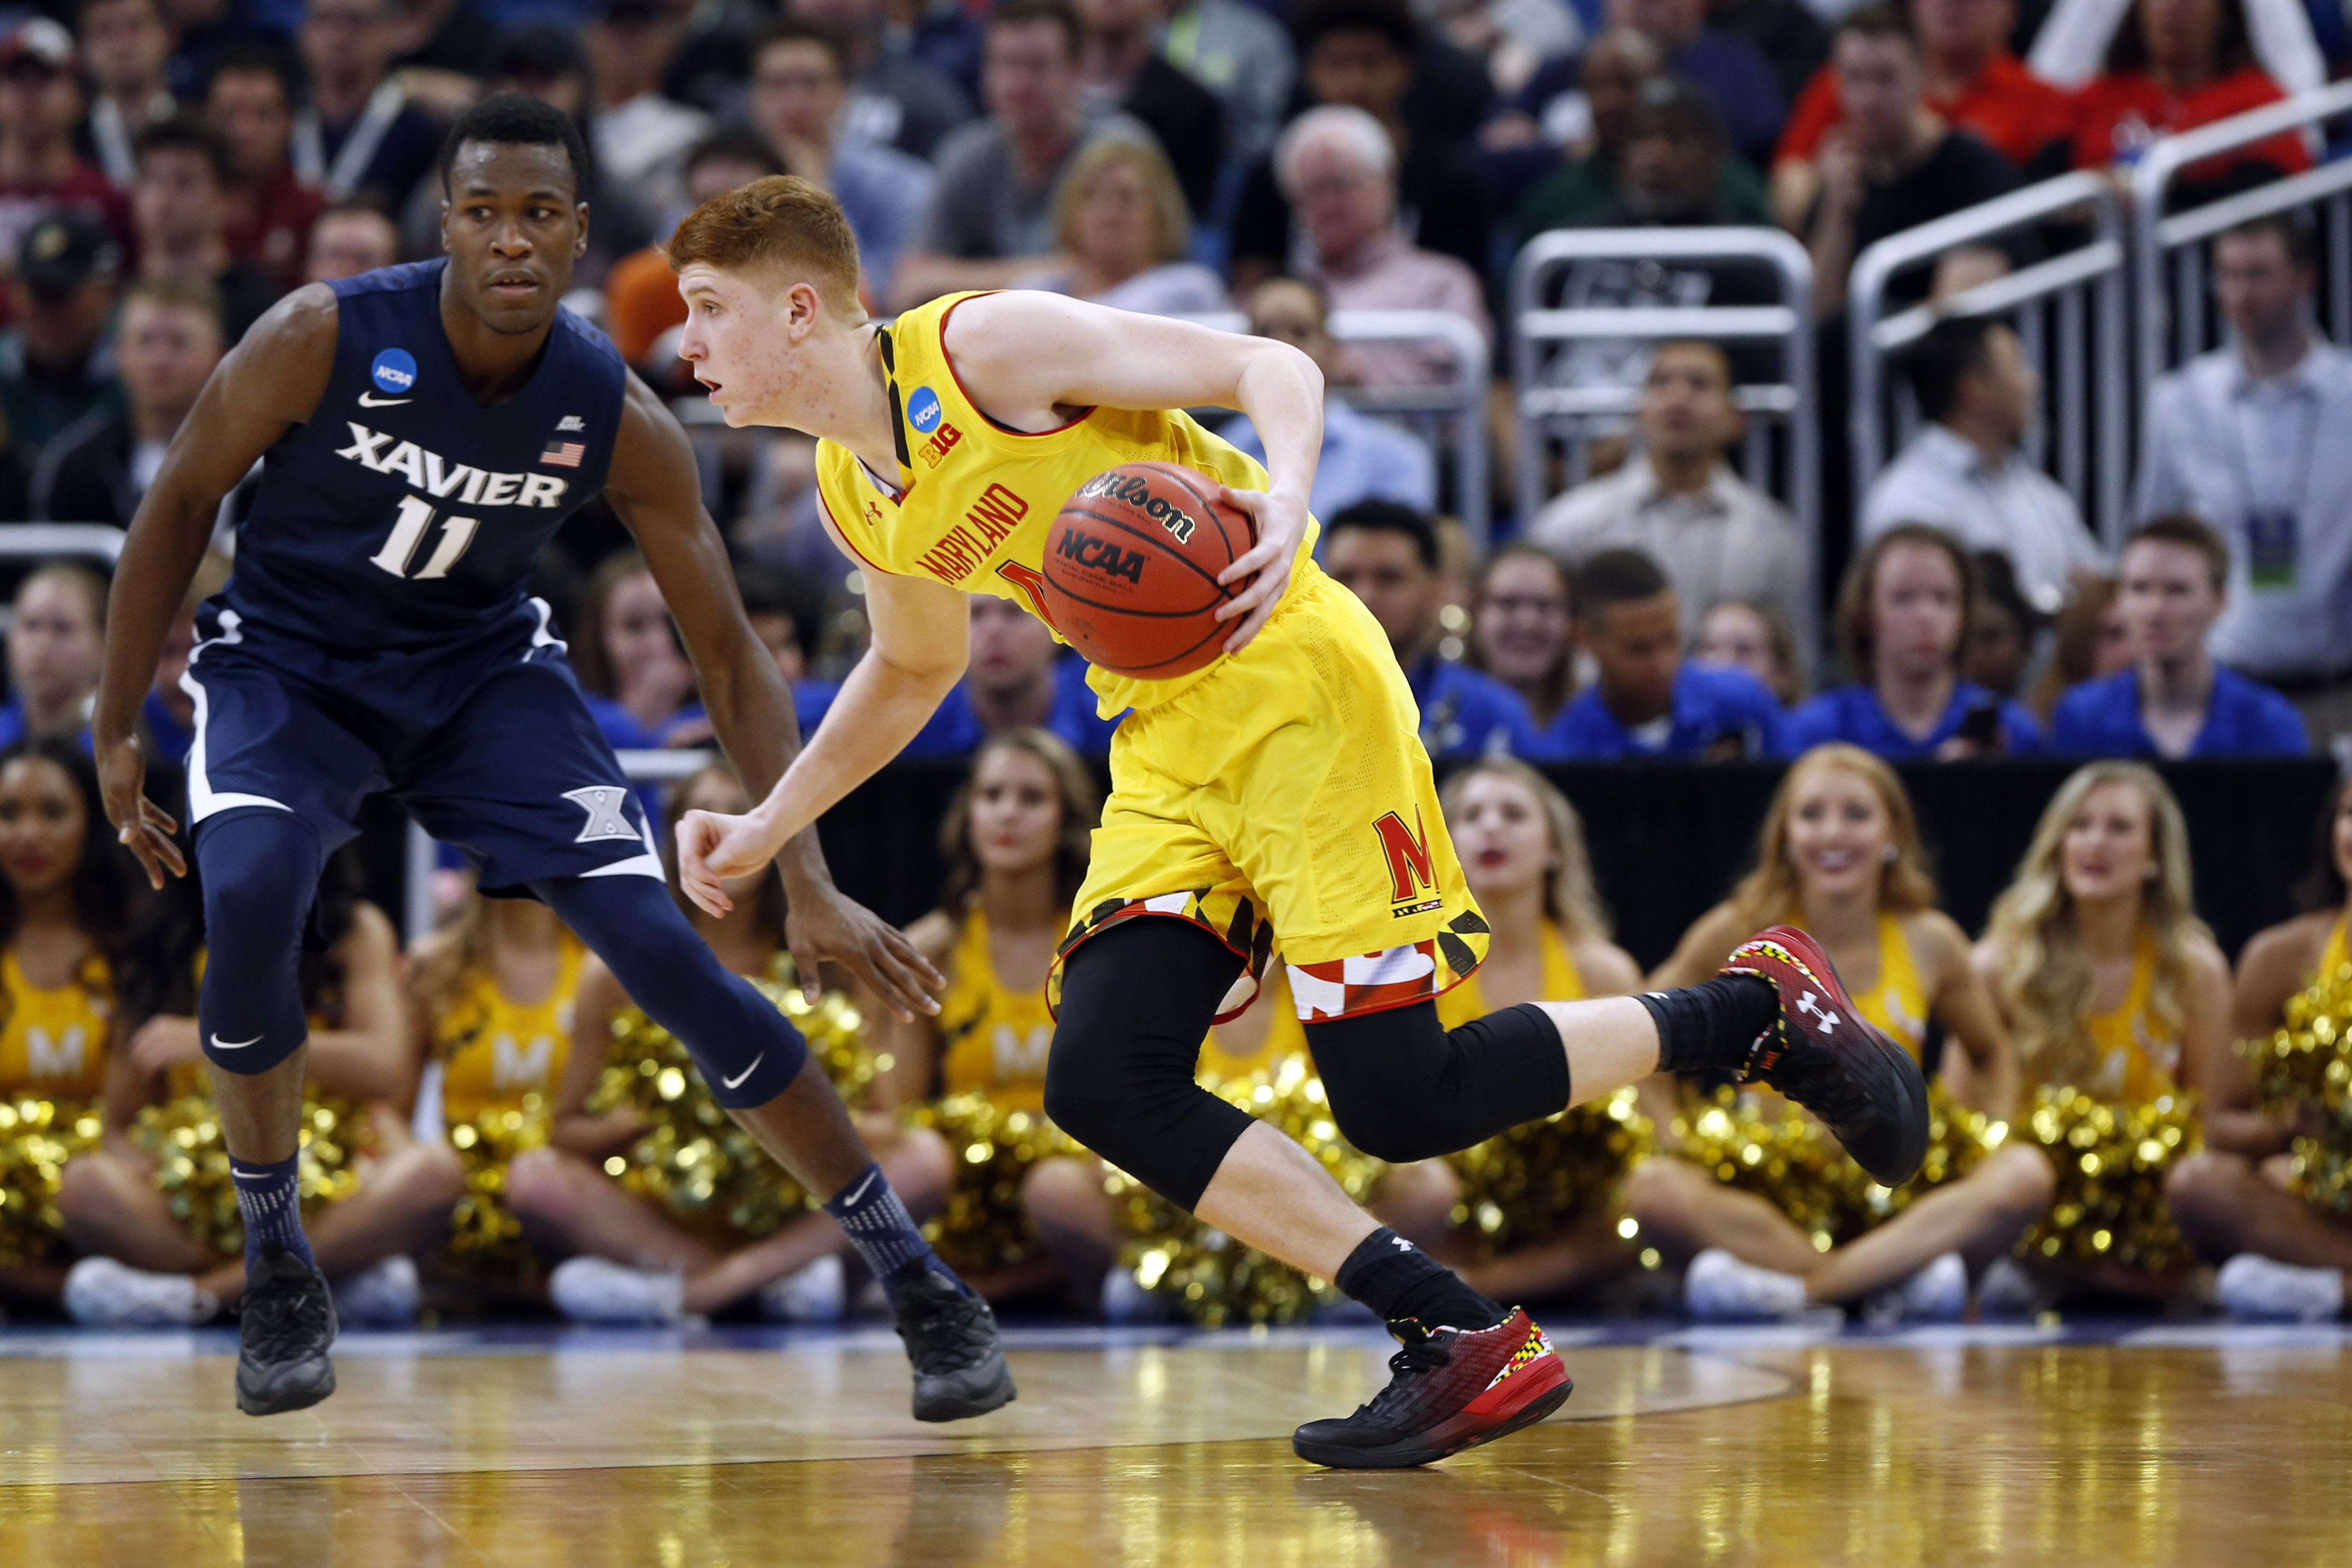 9948163-ncaa-basketball-ncaa-tournament-first-round-maryland-vs-xavier